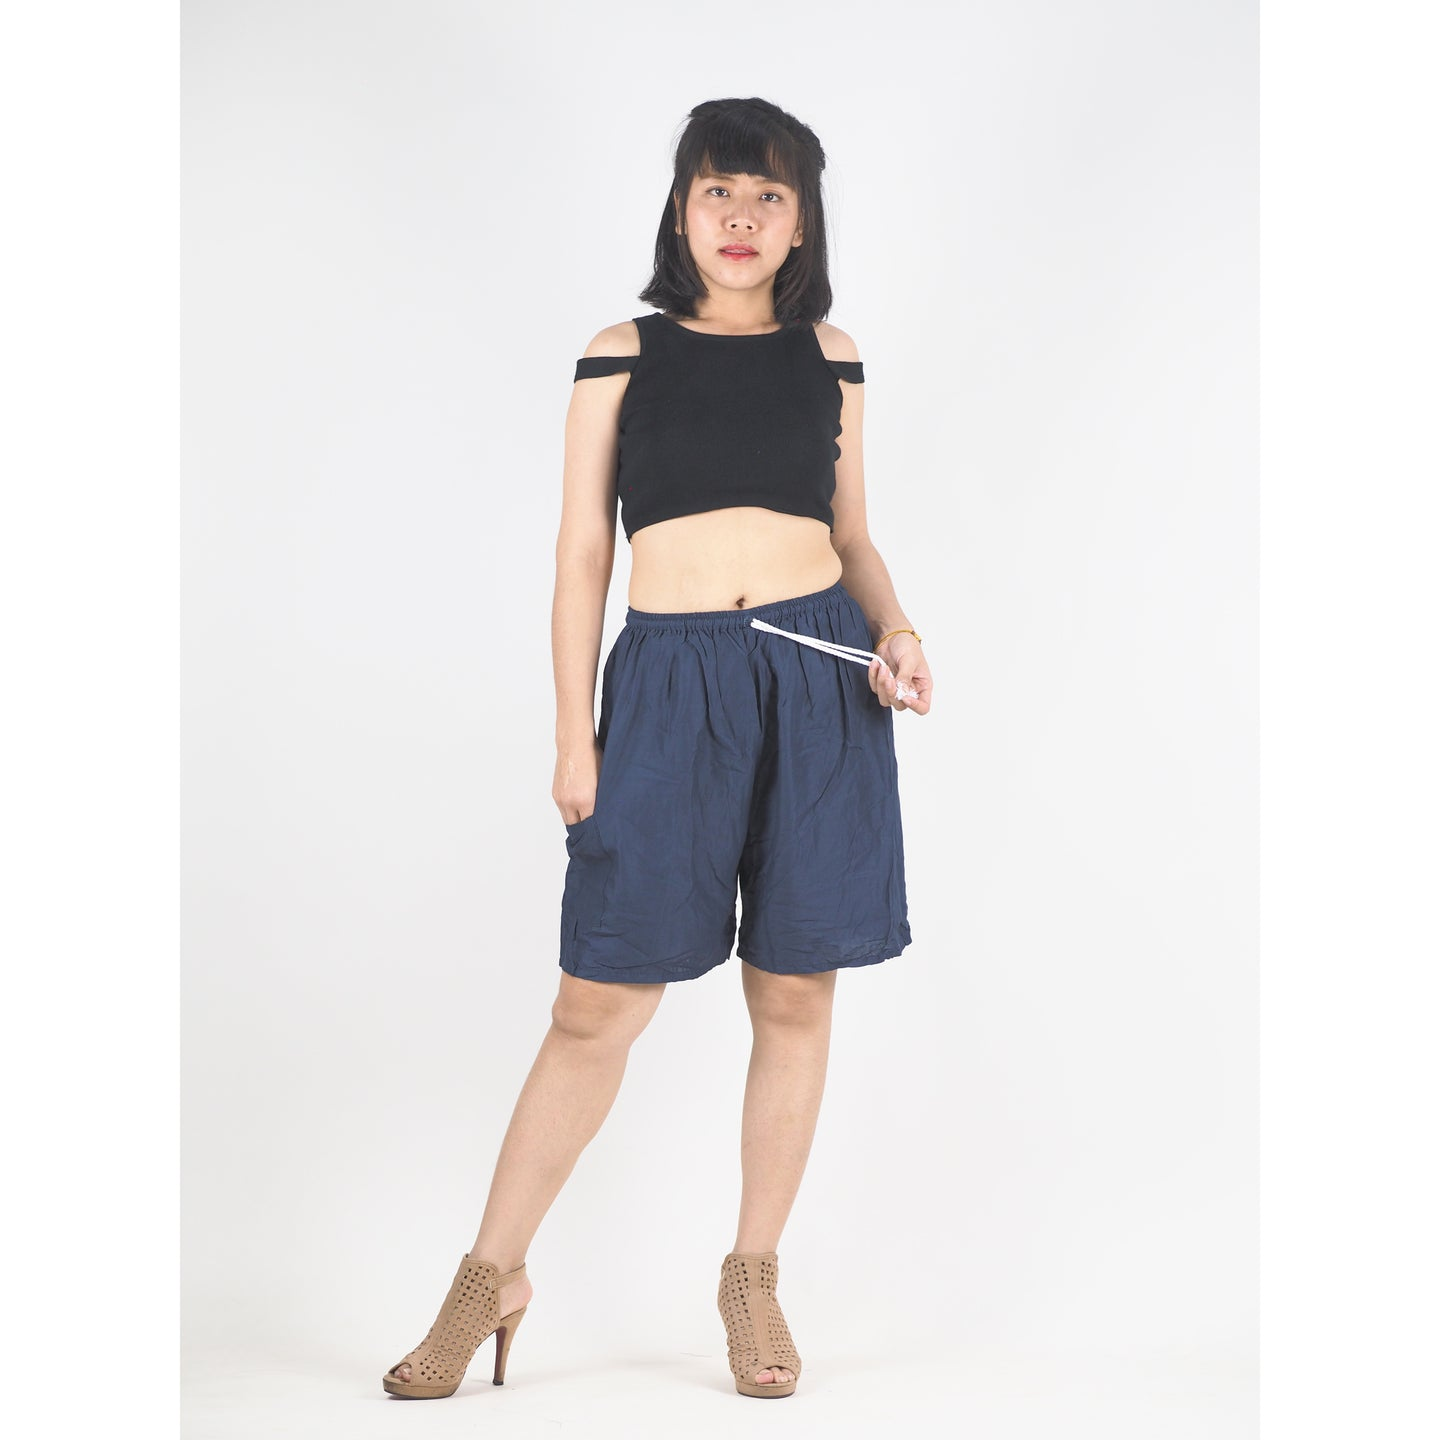 Solid Color Unisex Bermuda Pants in Navy Blue PP0139 020000 03